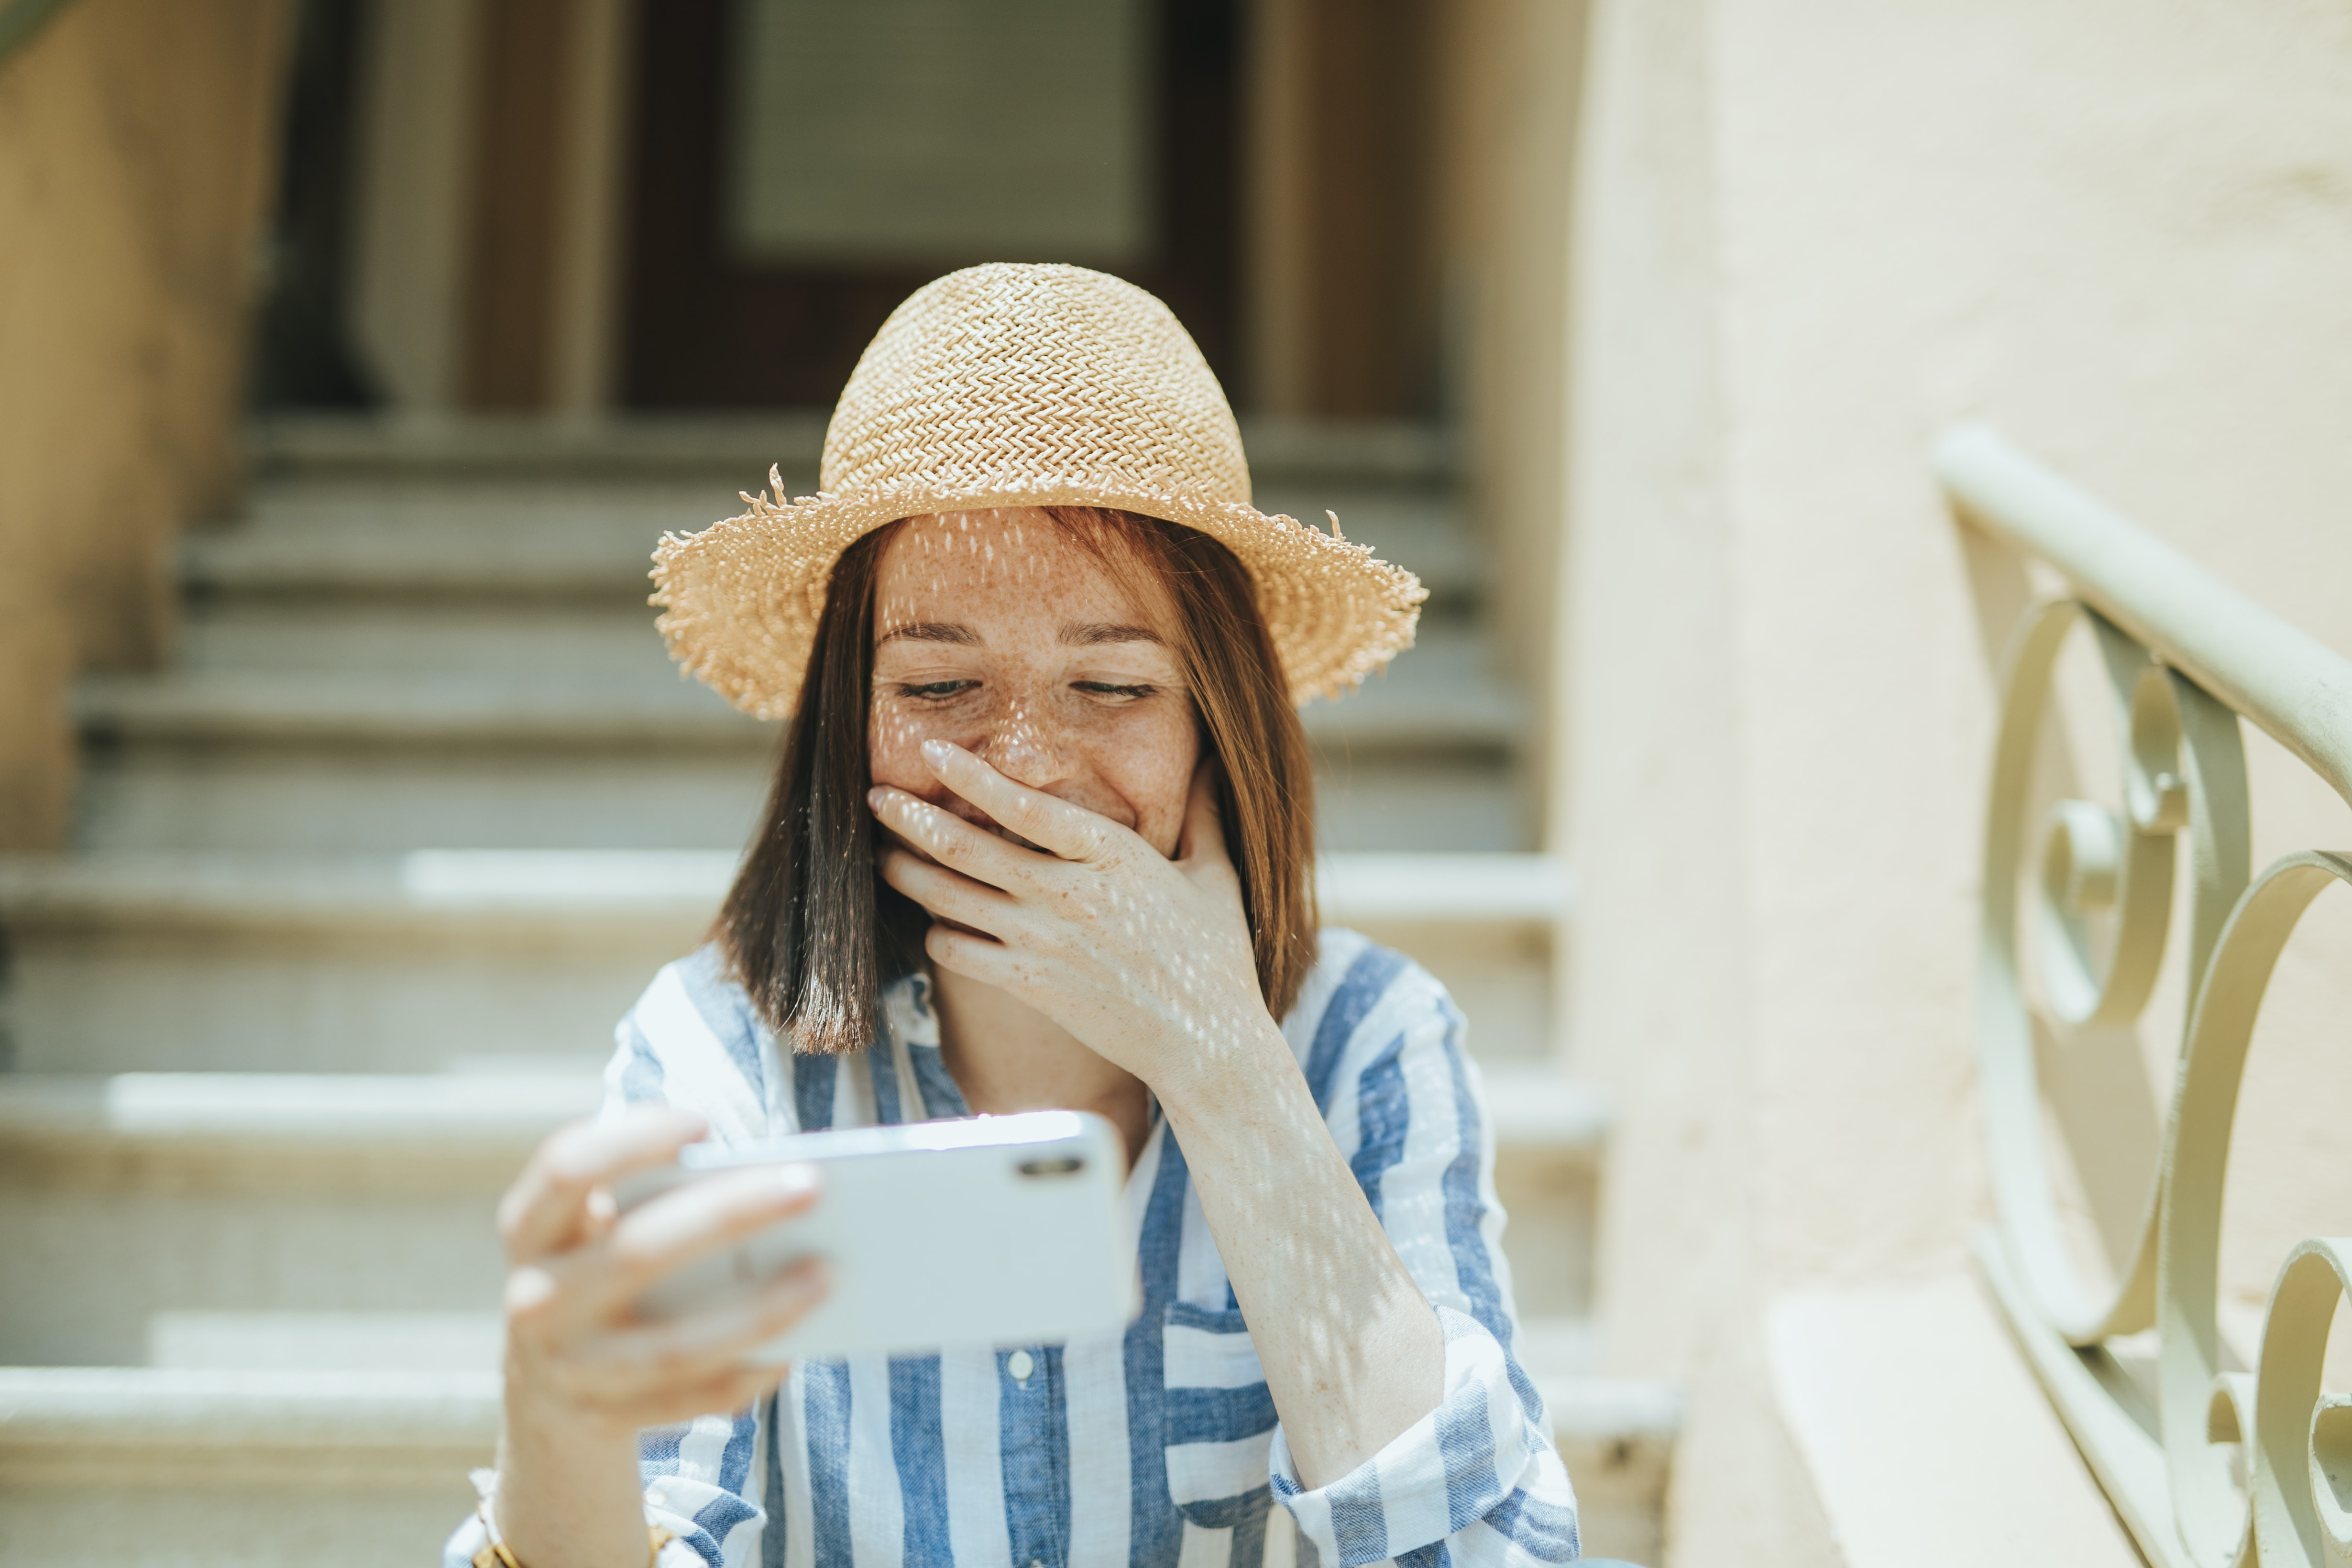 woman smiling while holding iPhone on stairs